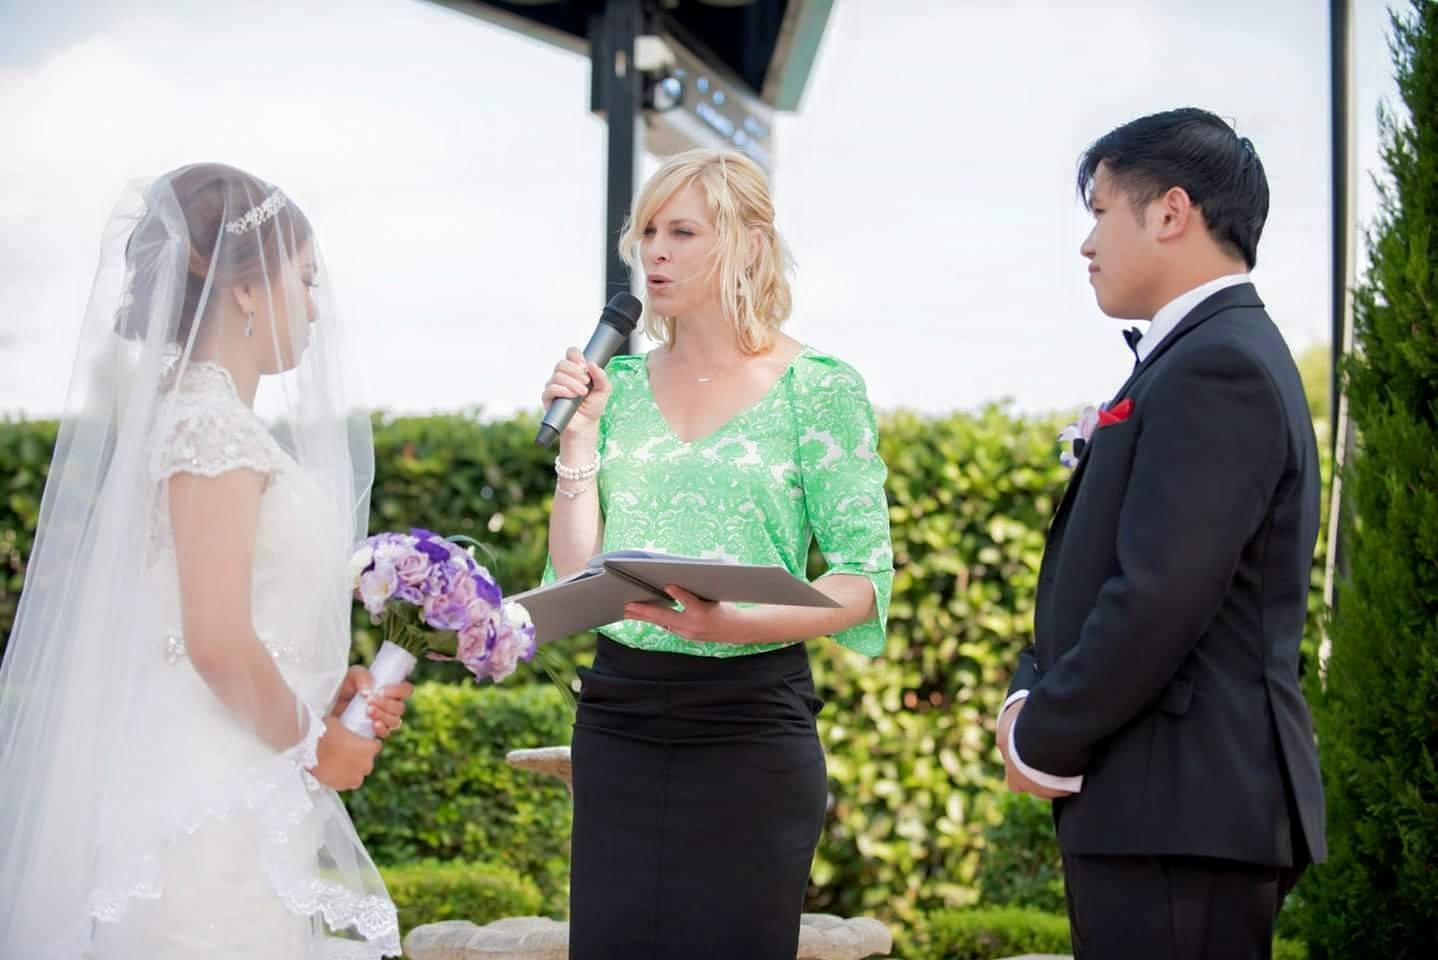 sydney wedding celebrant marriage ceremony